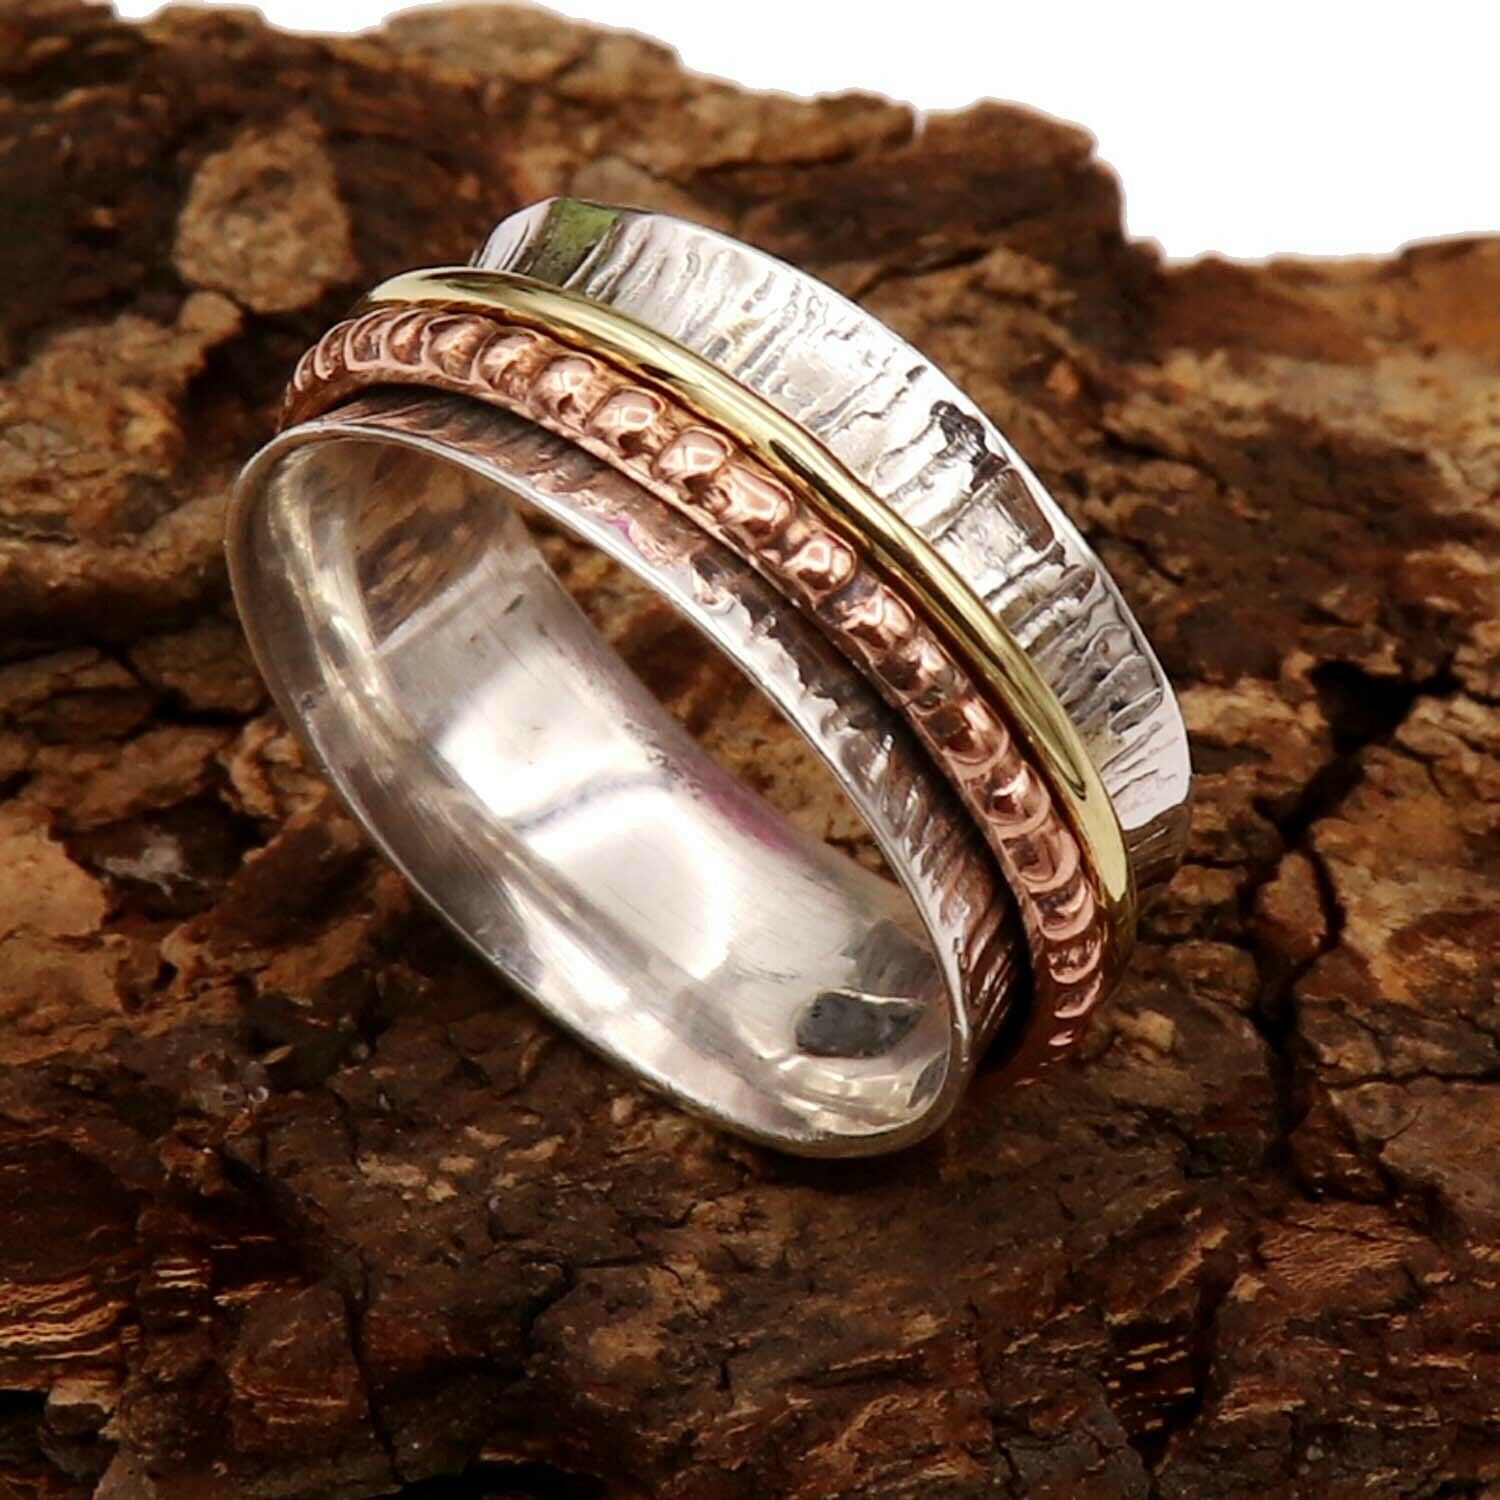 Spinner Ring Solid 925 Sterling Silver Band Meditation Ring All Size Men Women Gift Item Statement Ring GESR04